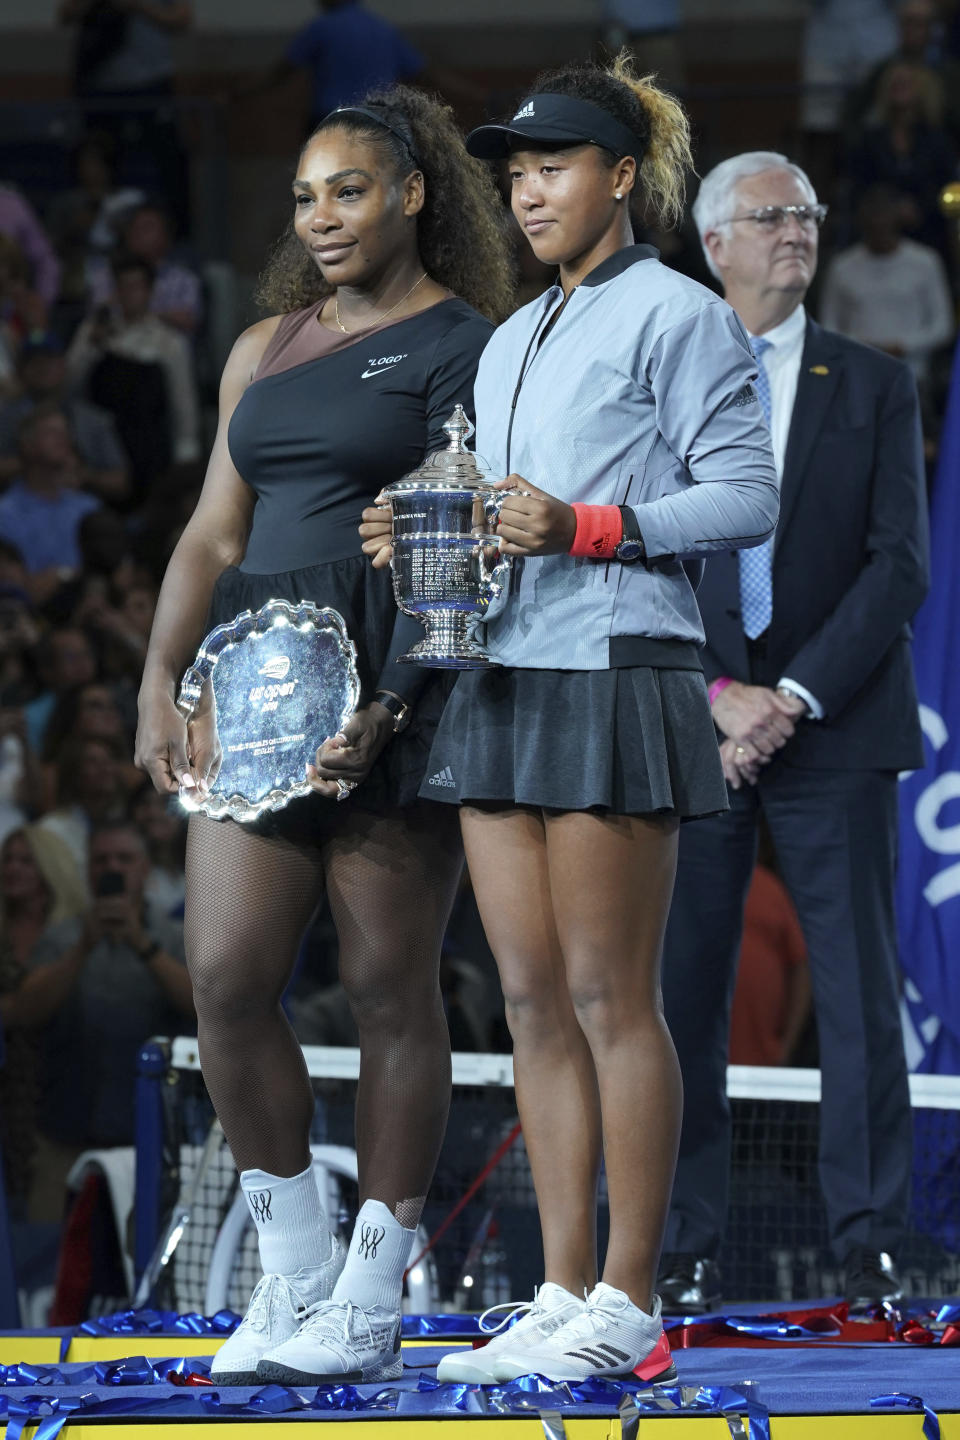 People are outraged over a racially insensitive cartoon about Serena Williams and Naomi Osaka. (Photo: Greg Allen/Invision/AP)